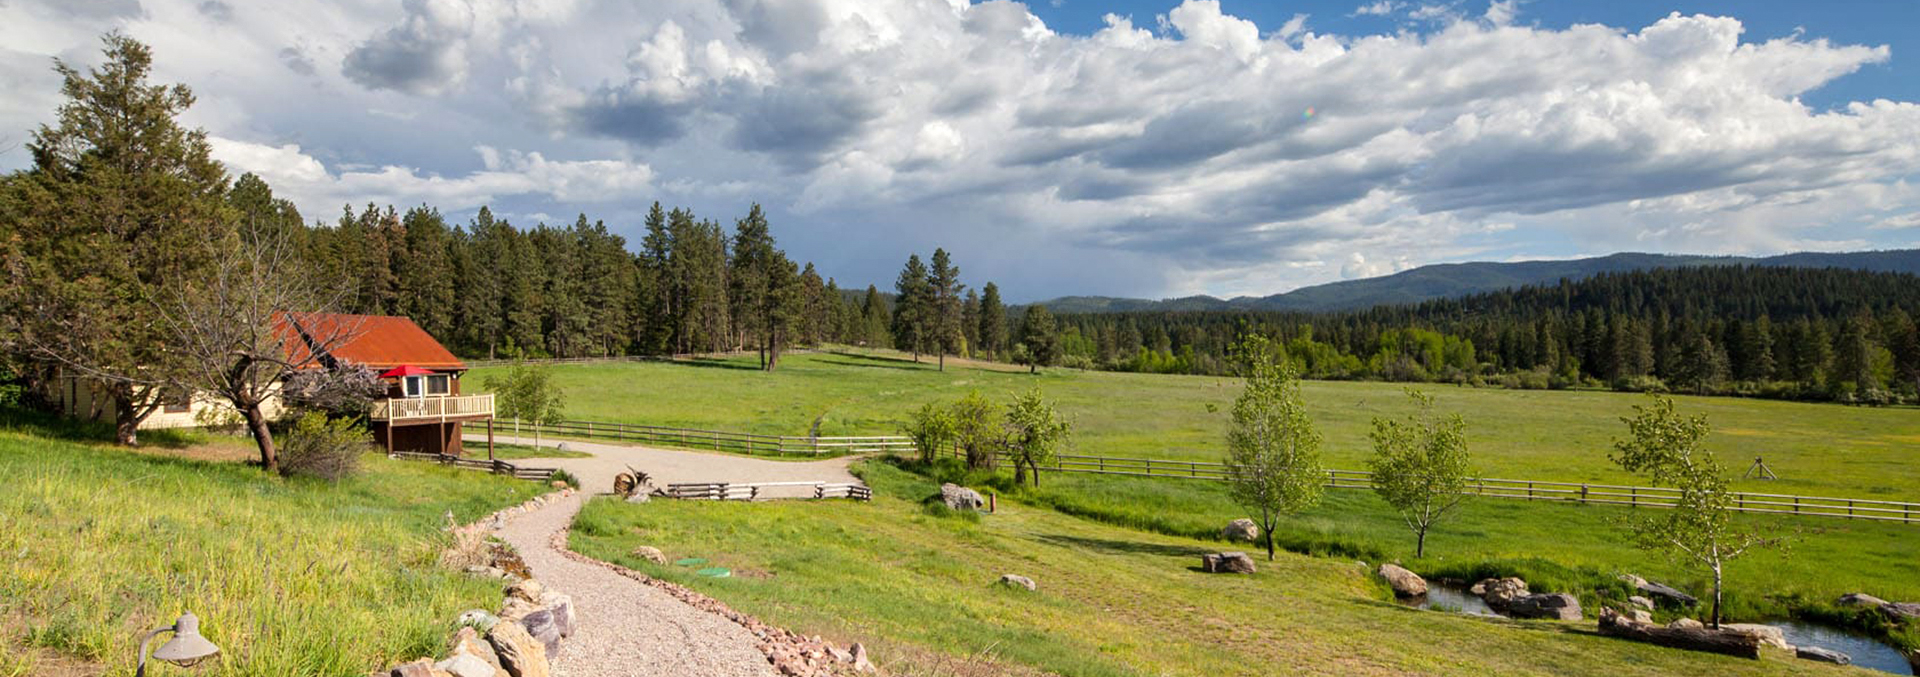 montana ranch land for sale leaping horse farm